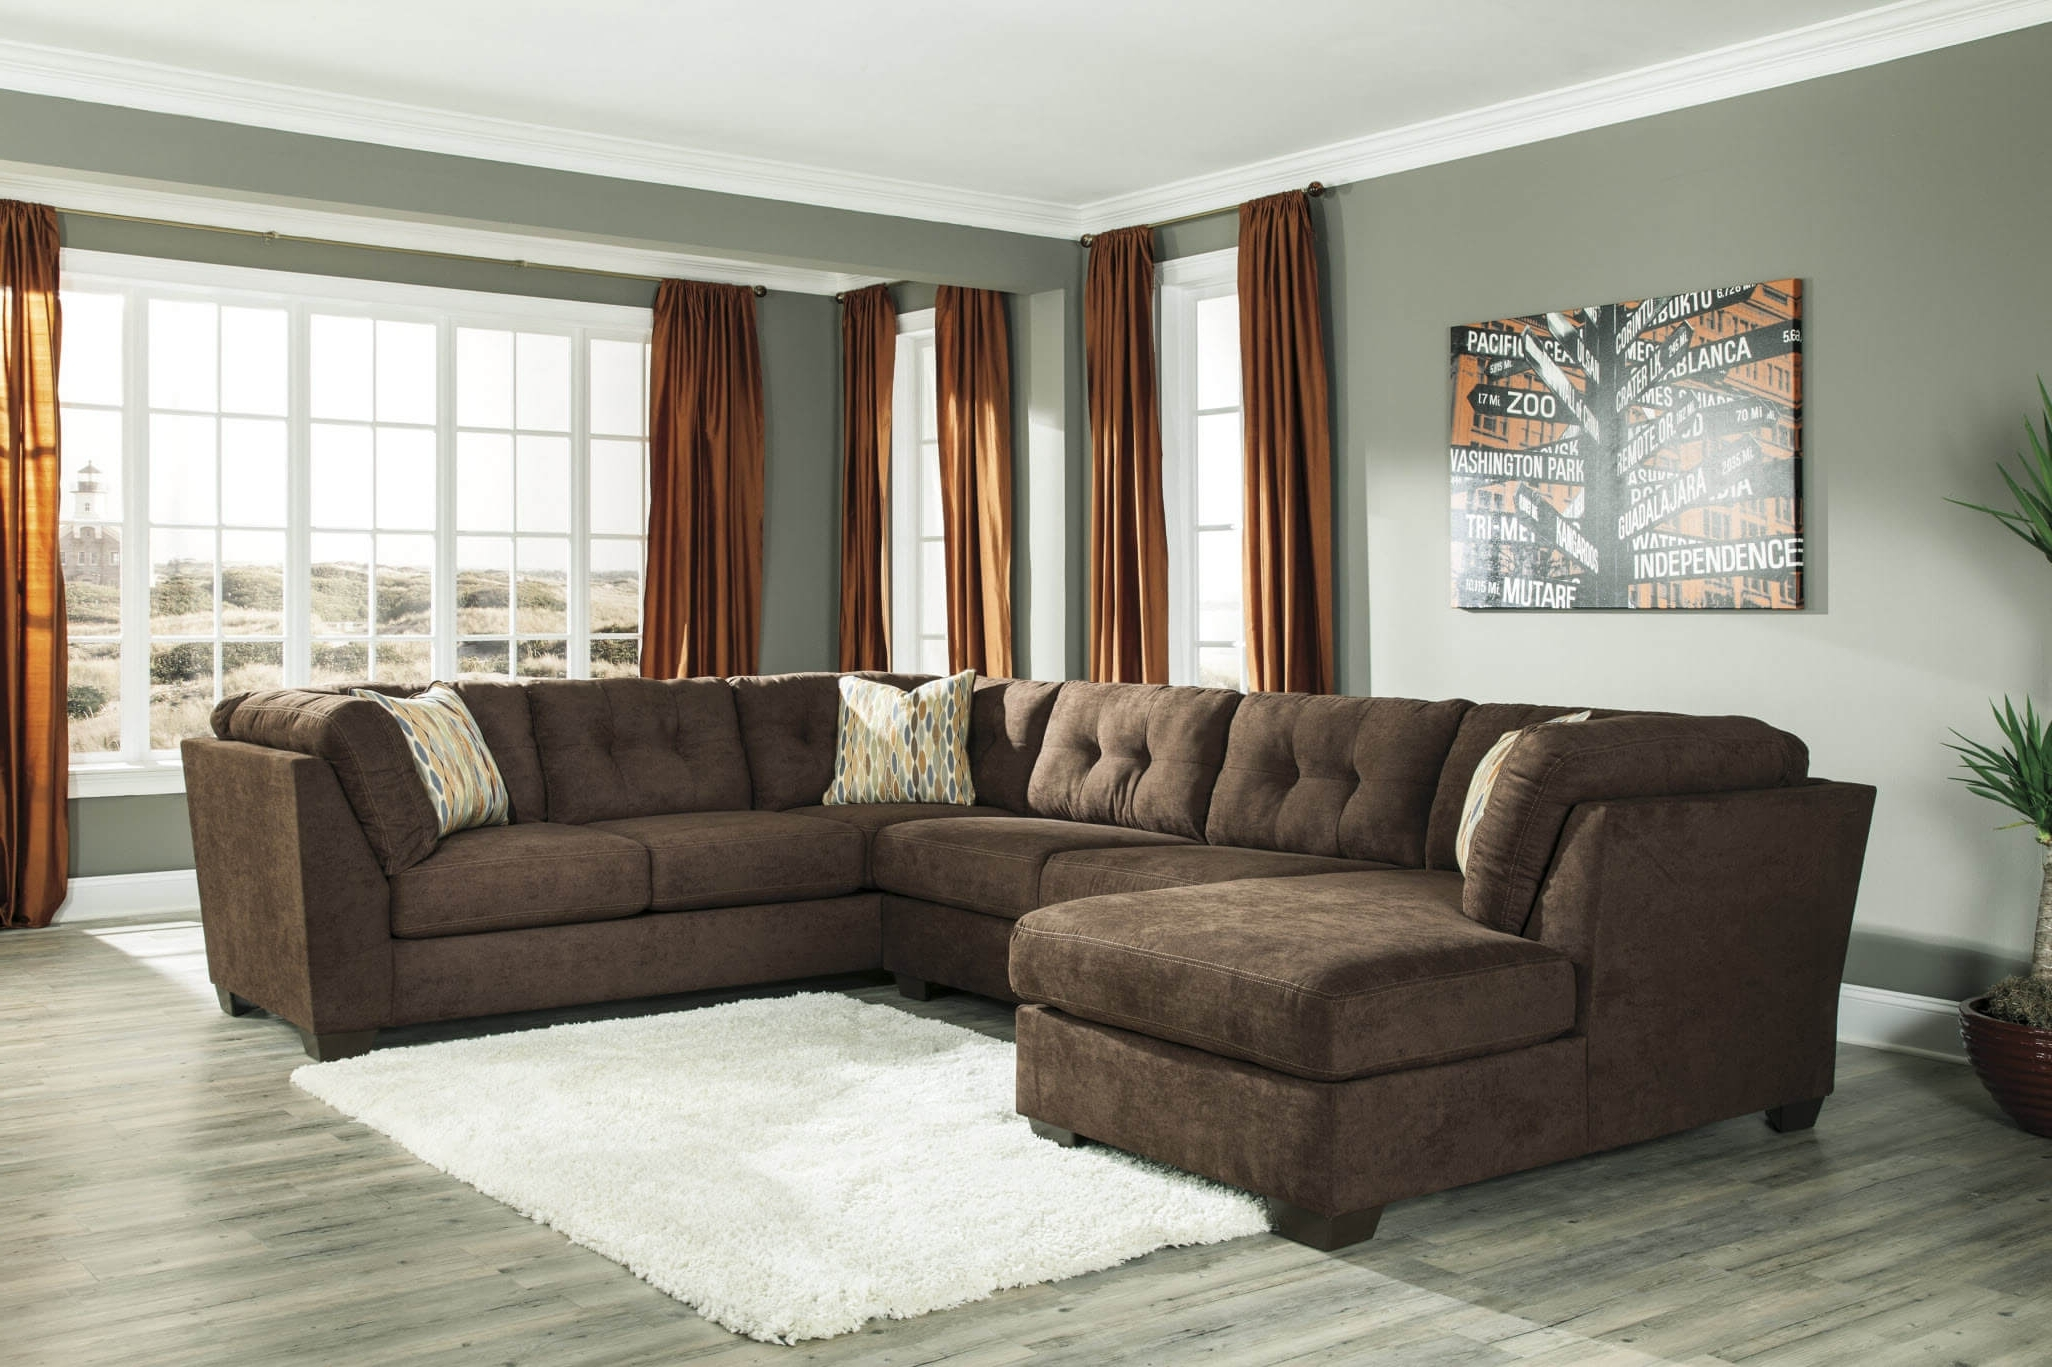 Popular Chocolate Sectional Sofas Throughout Chocolate Sectional Sofa Set With Chaise (View 20 of 20)